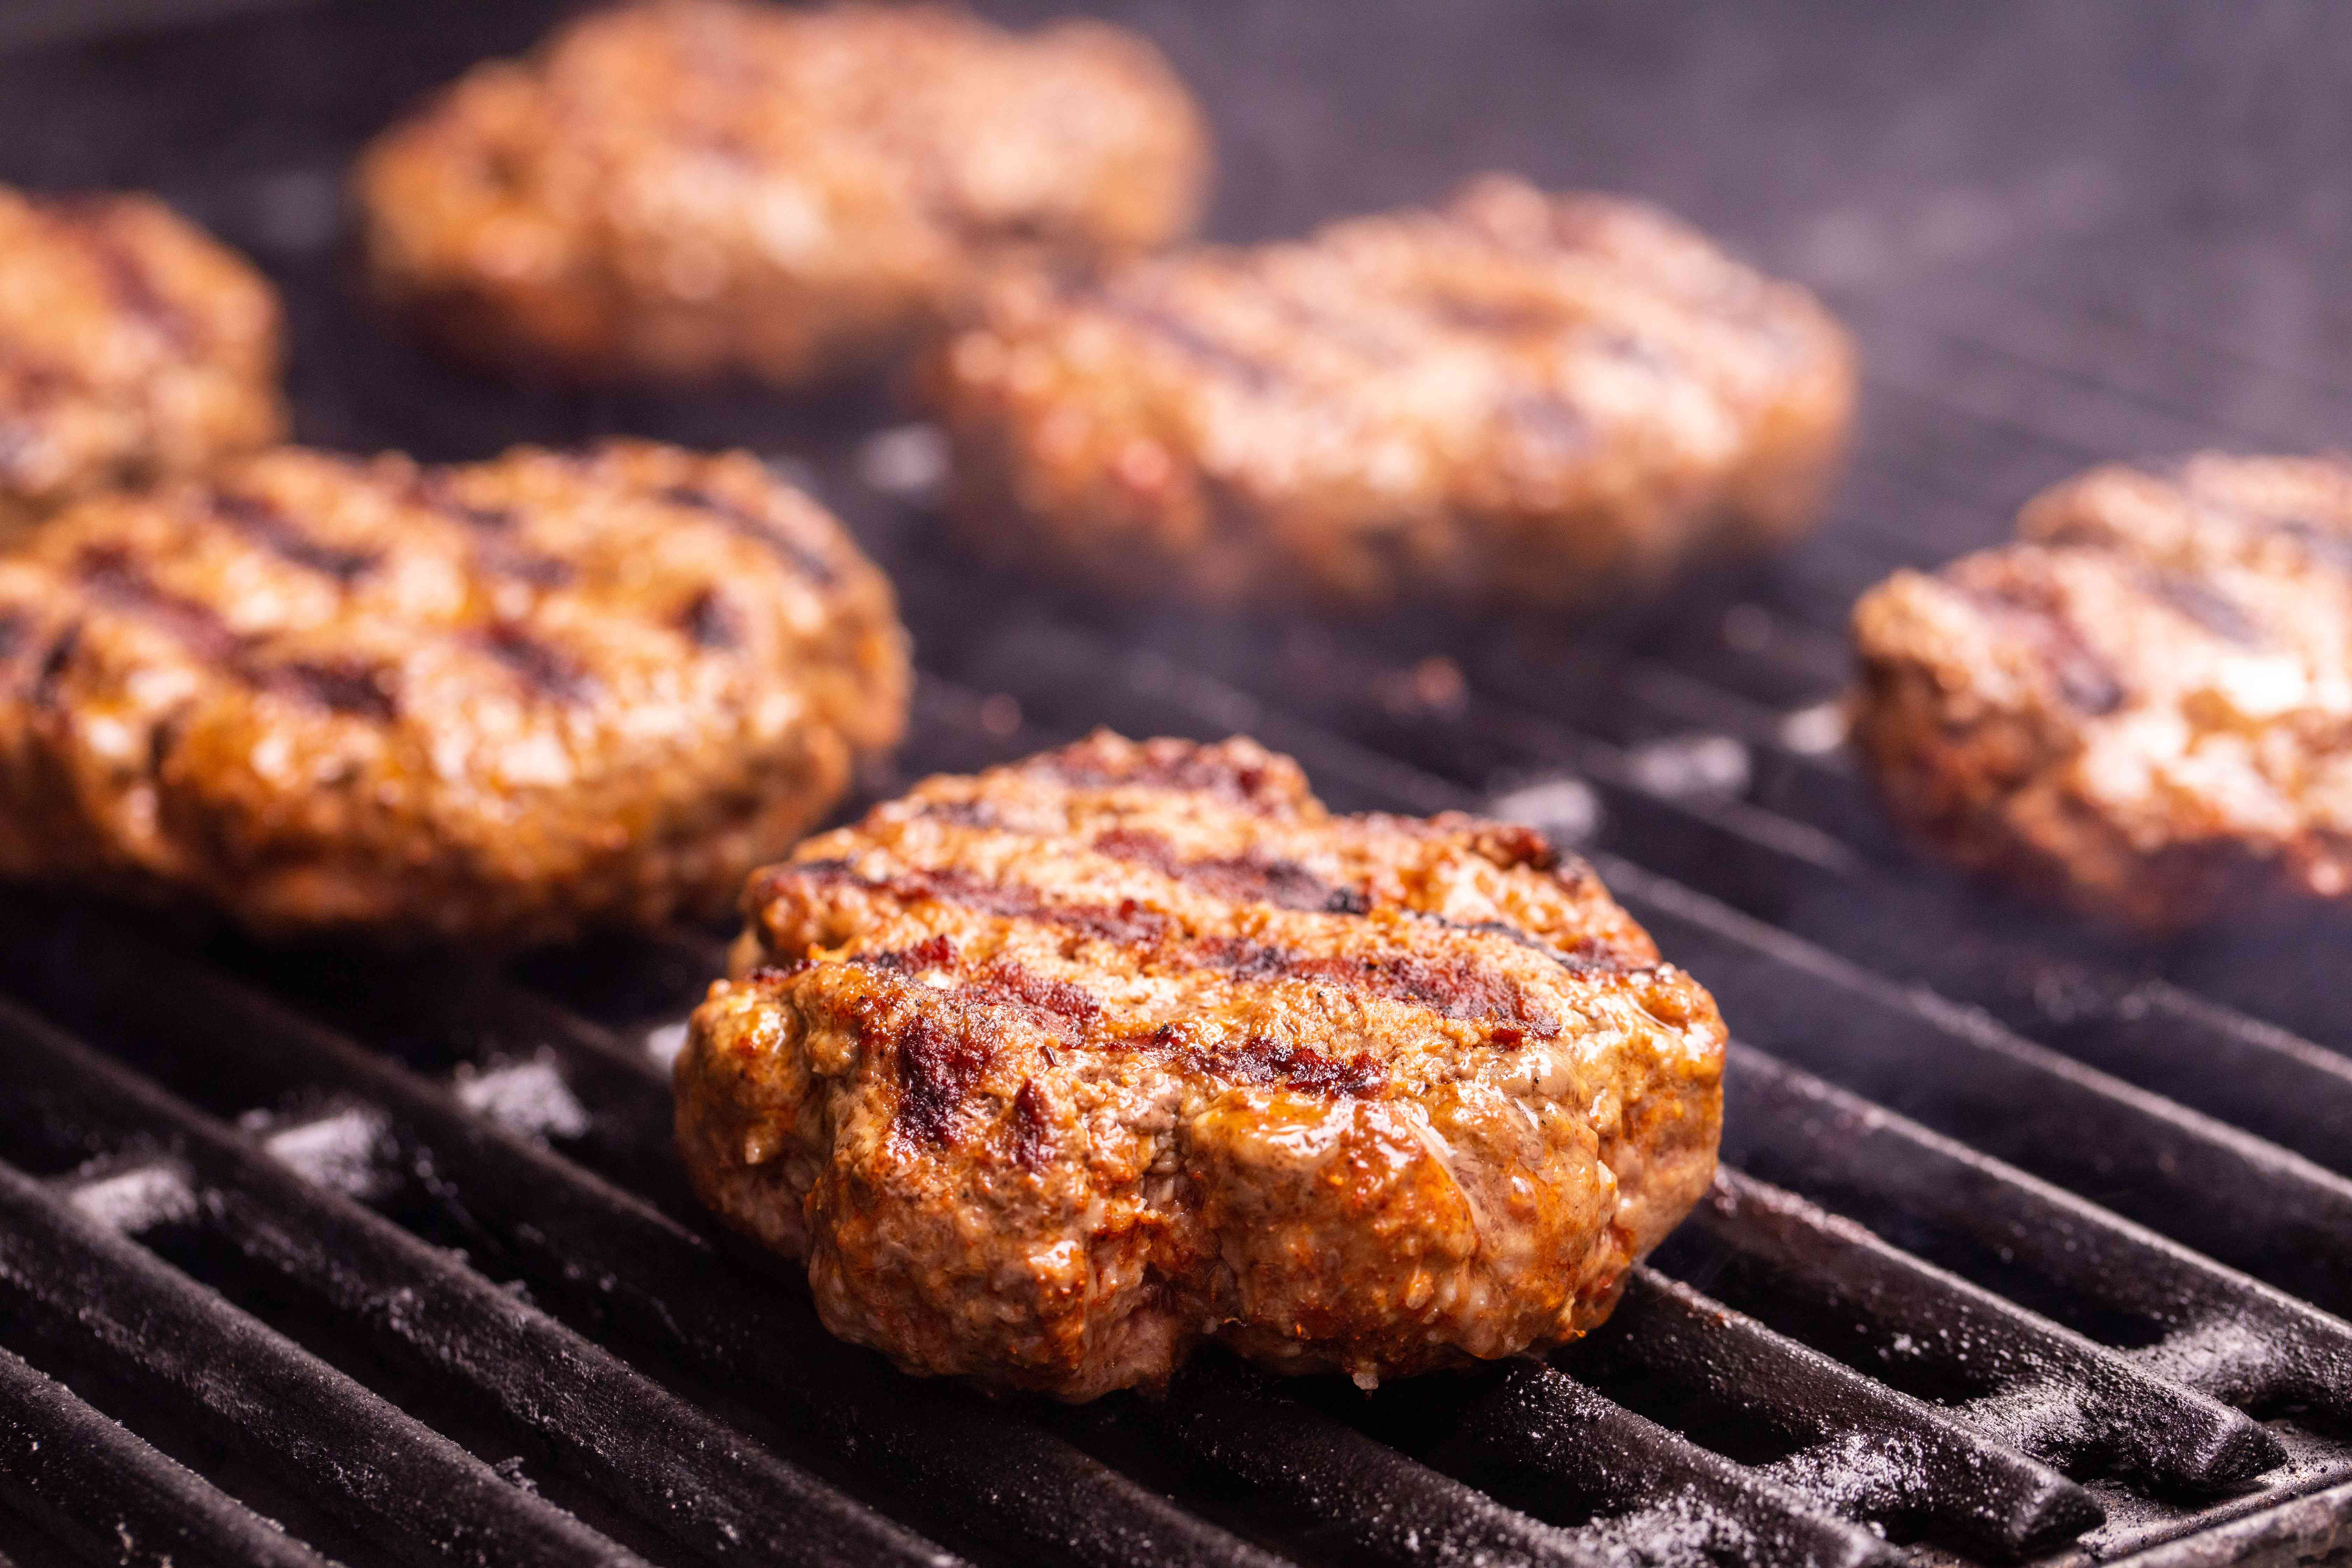 Burger patties on the grill for Nacho Mexican Burger.